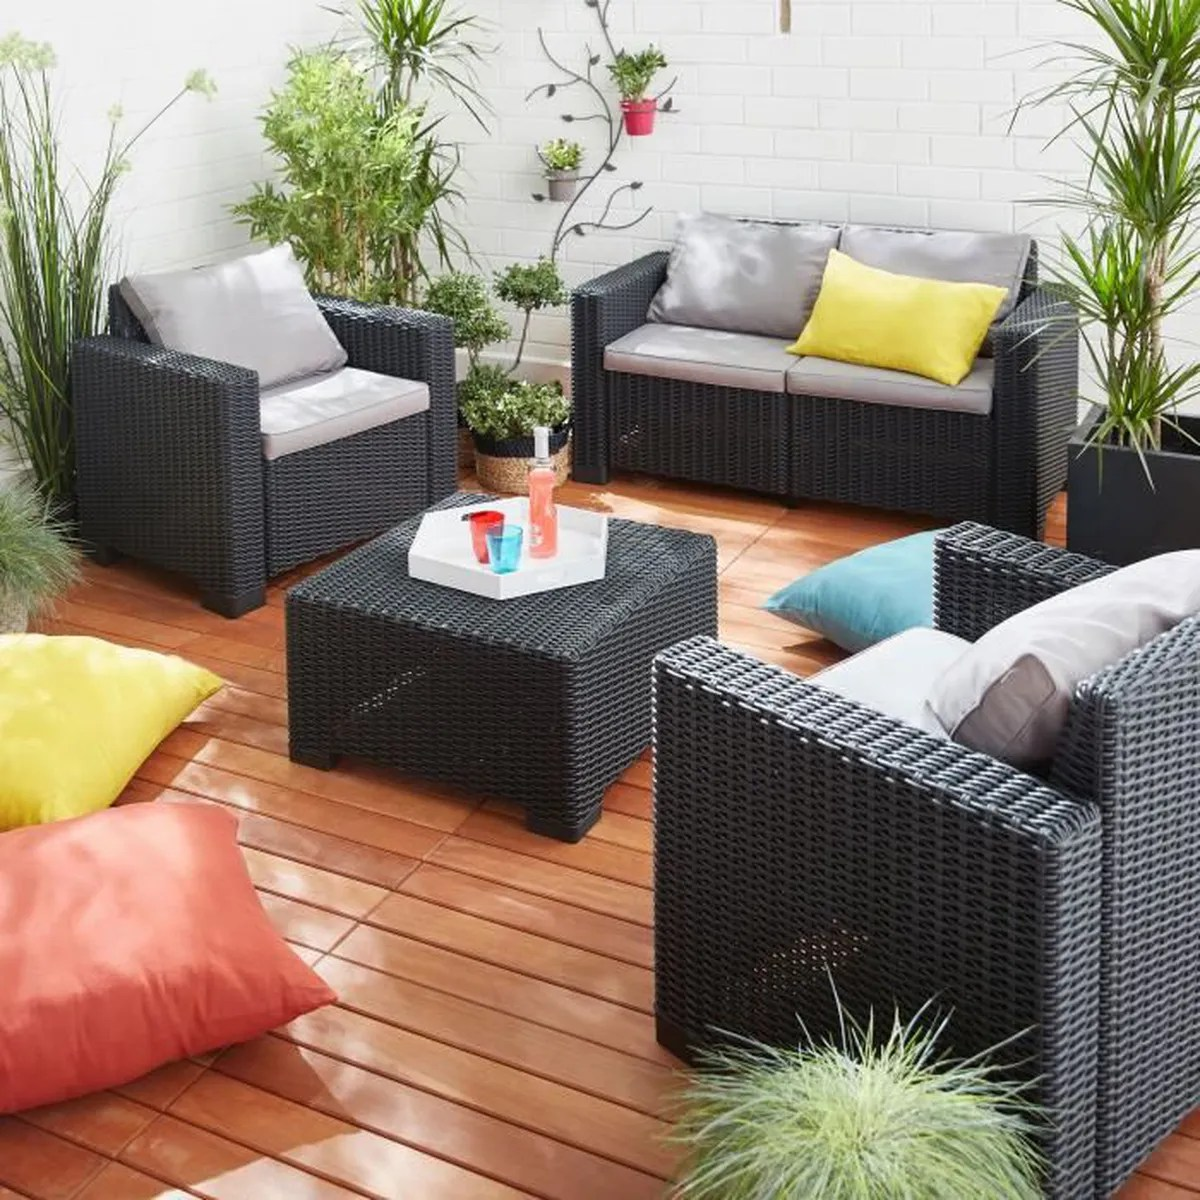 Miadomodo Salon De Jardin Awesome Salon De Jardin Effet Rotin Contemporary House Design